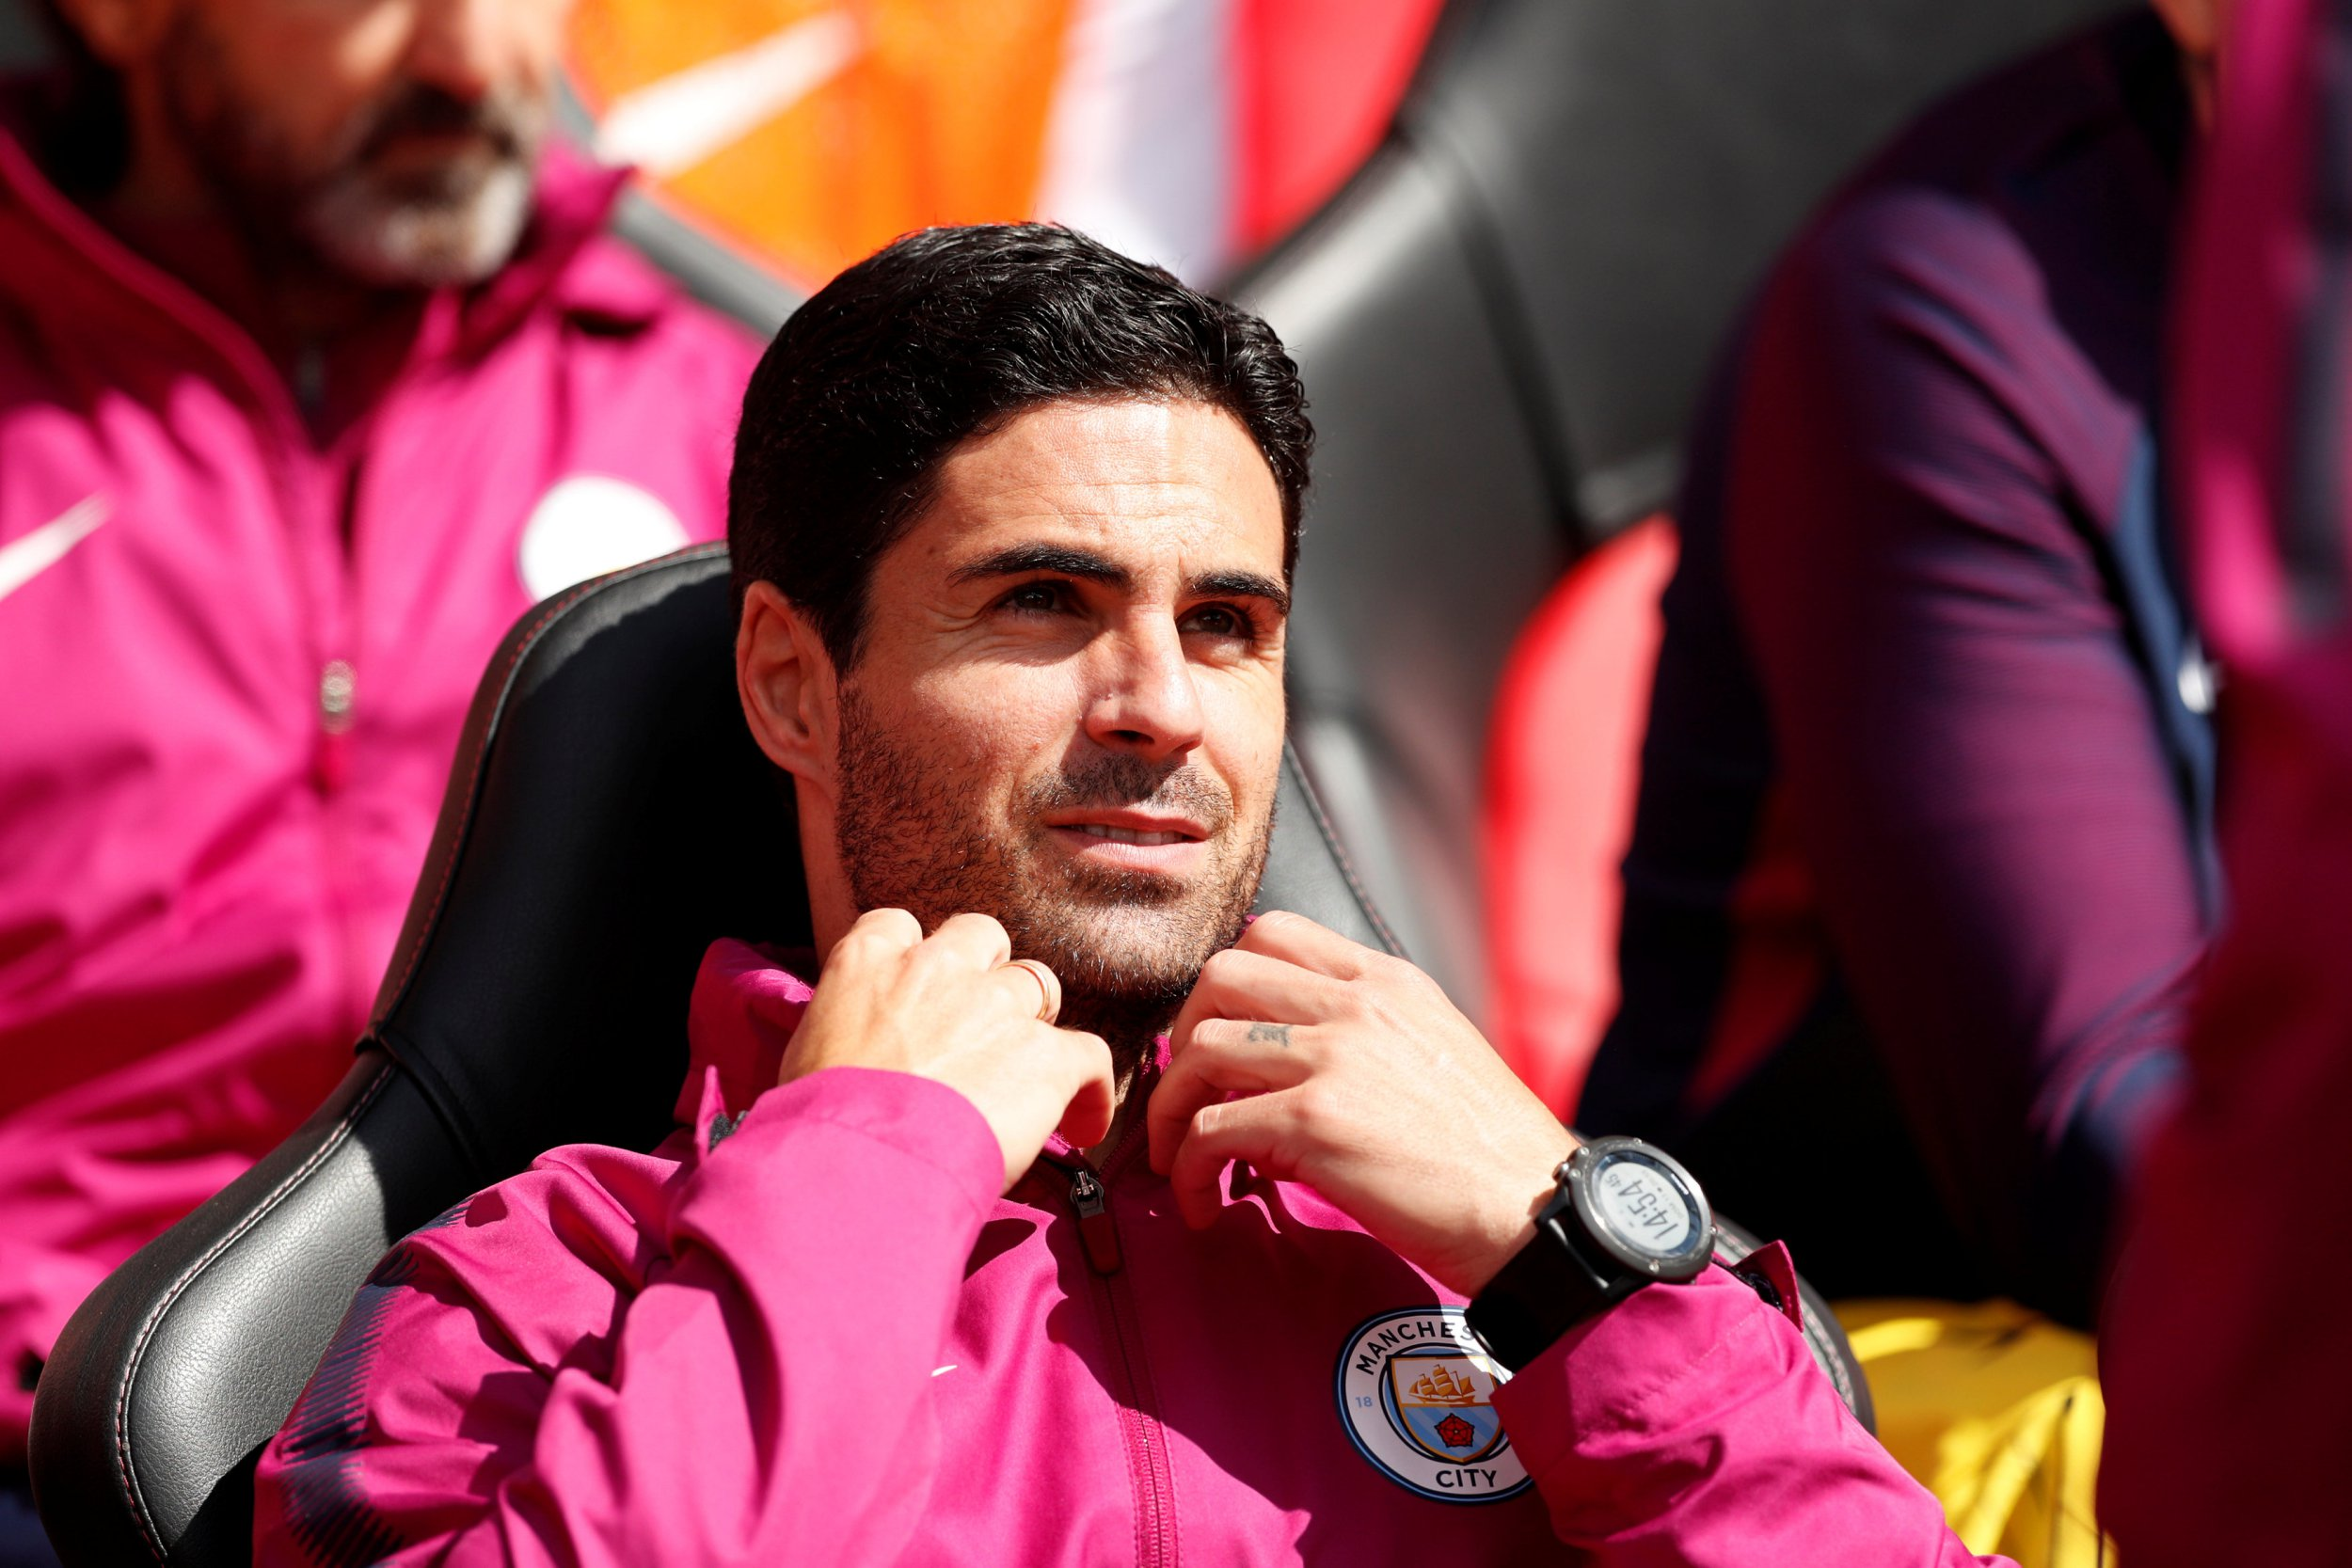 Arsenal set to confirm Mikel Arteta as new manager this week